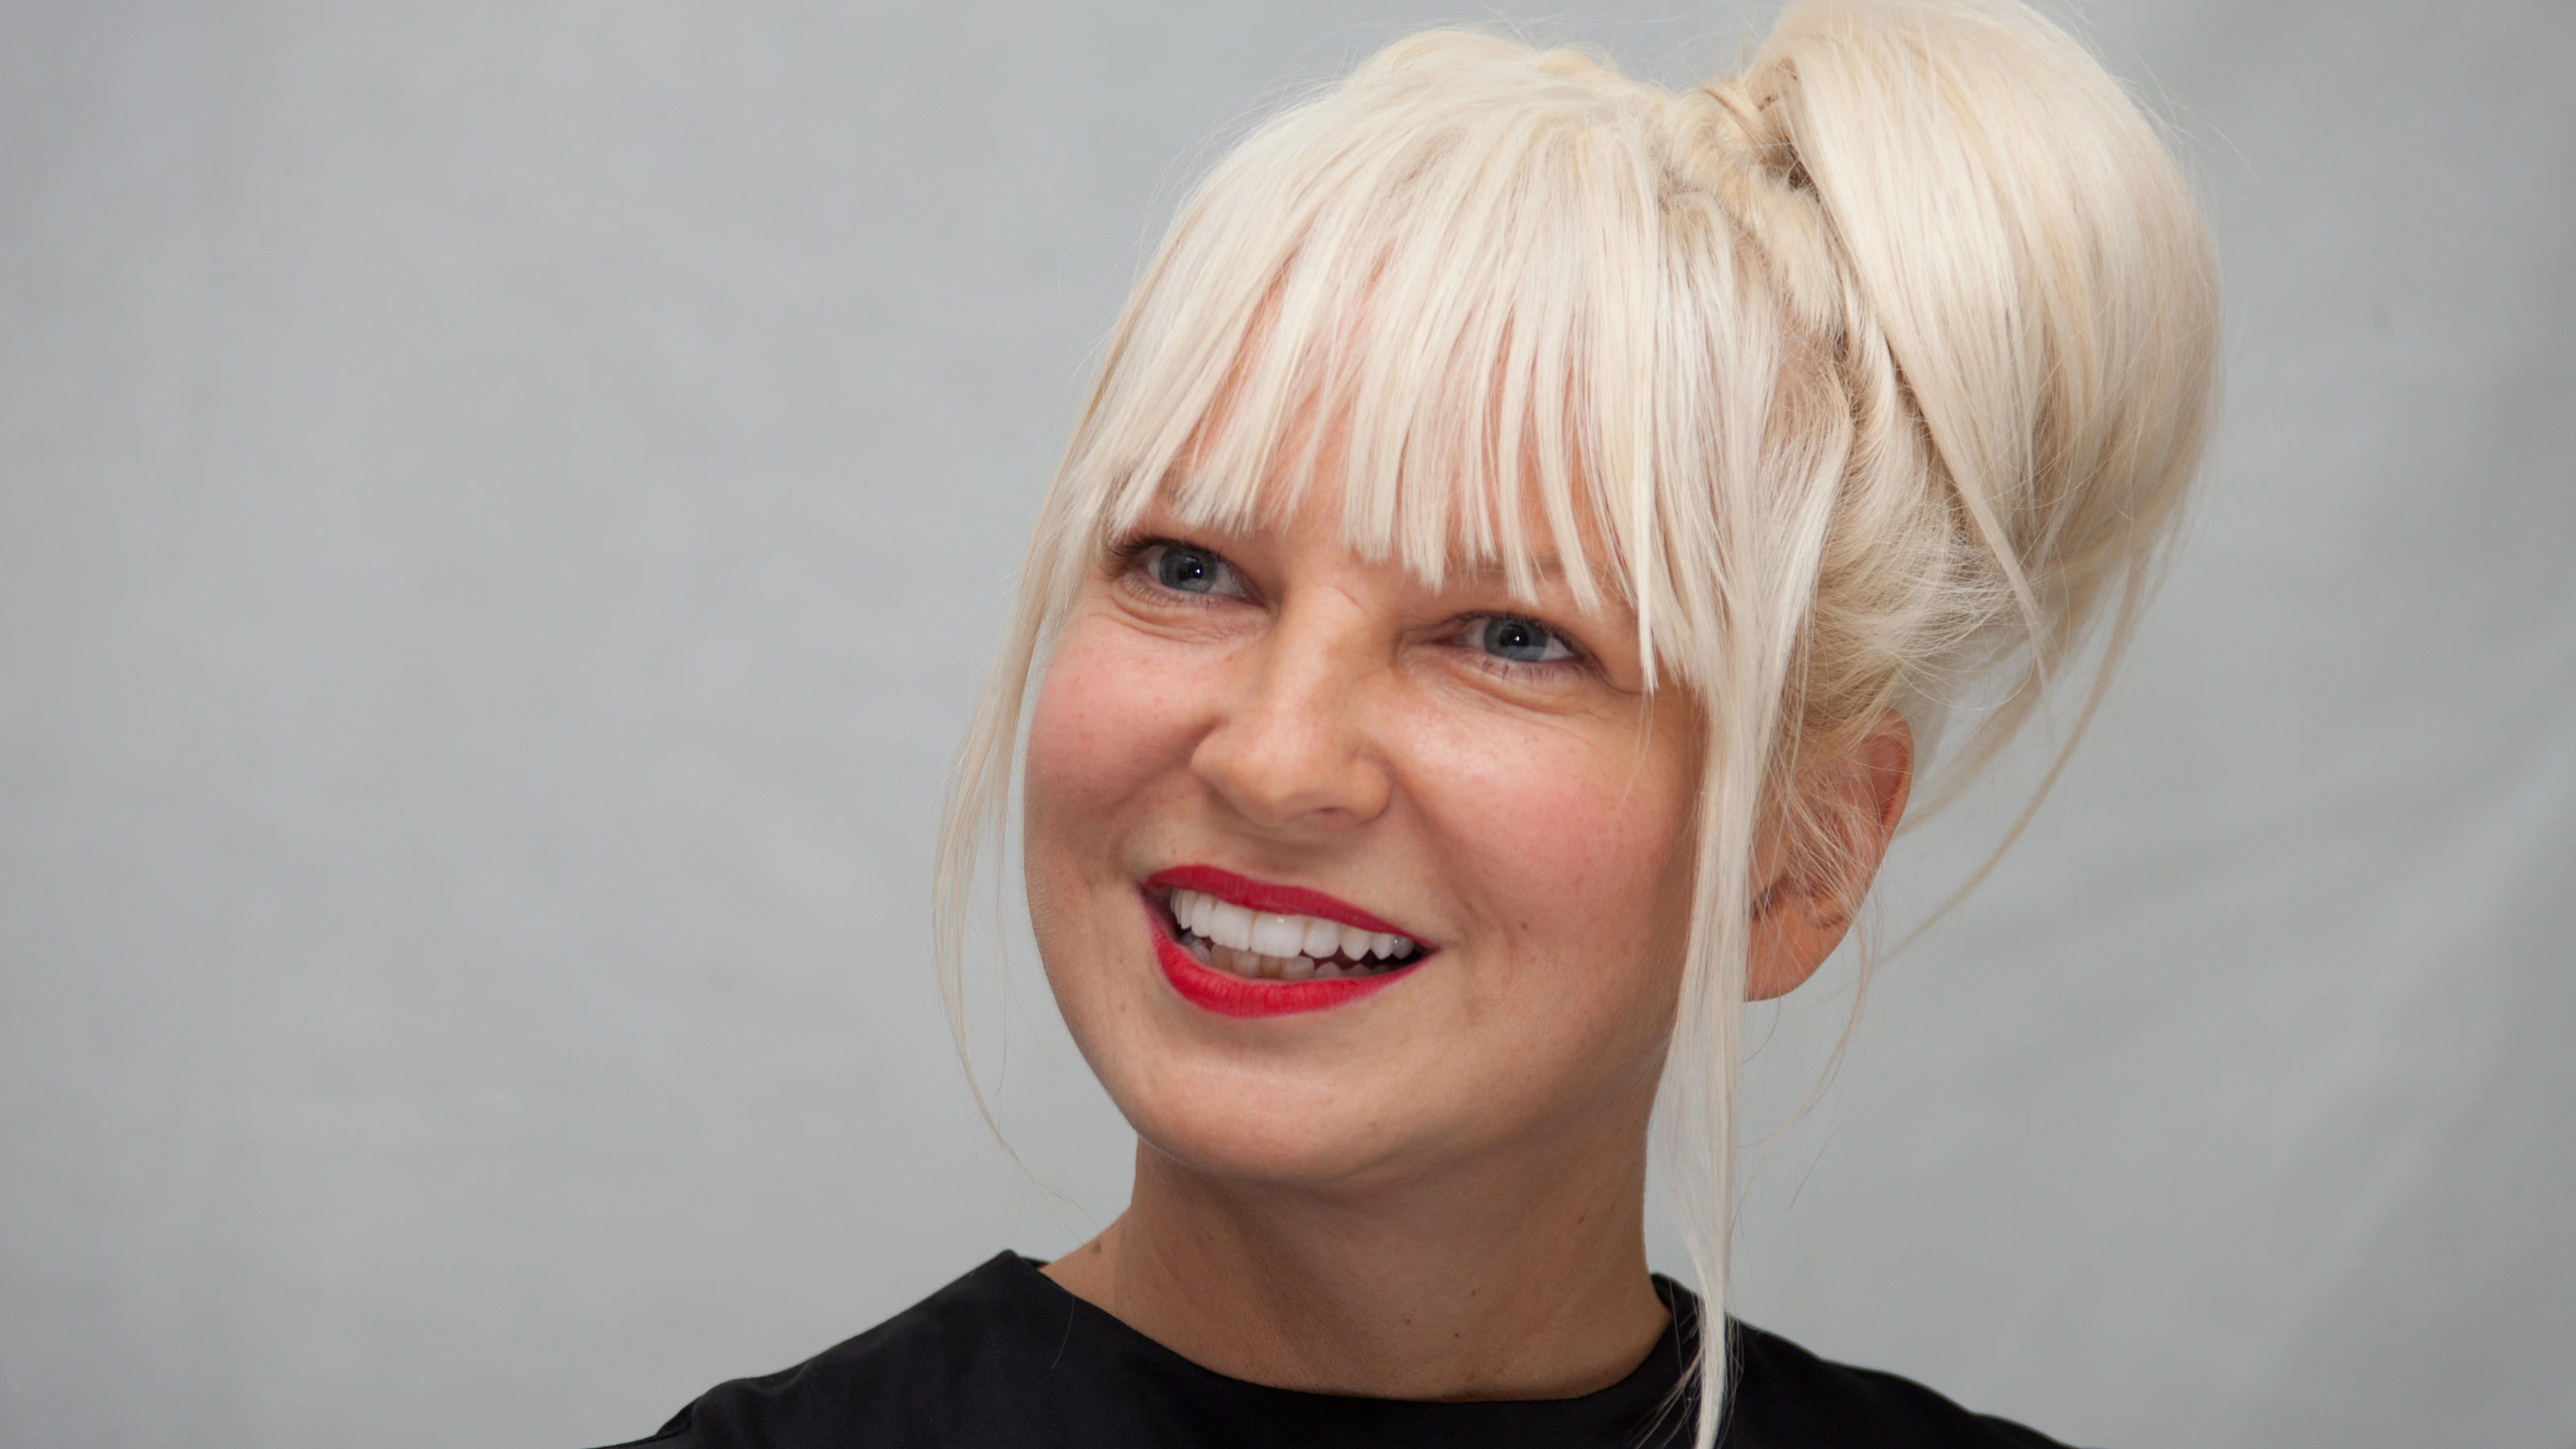 Singer Sia attends the junket for the film Annie in New York City, NY, USA, December 3, 2014. Photo by HT/ABACAPRESS.COM